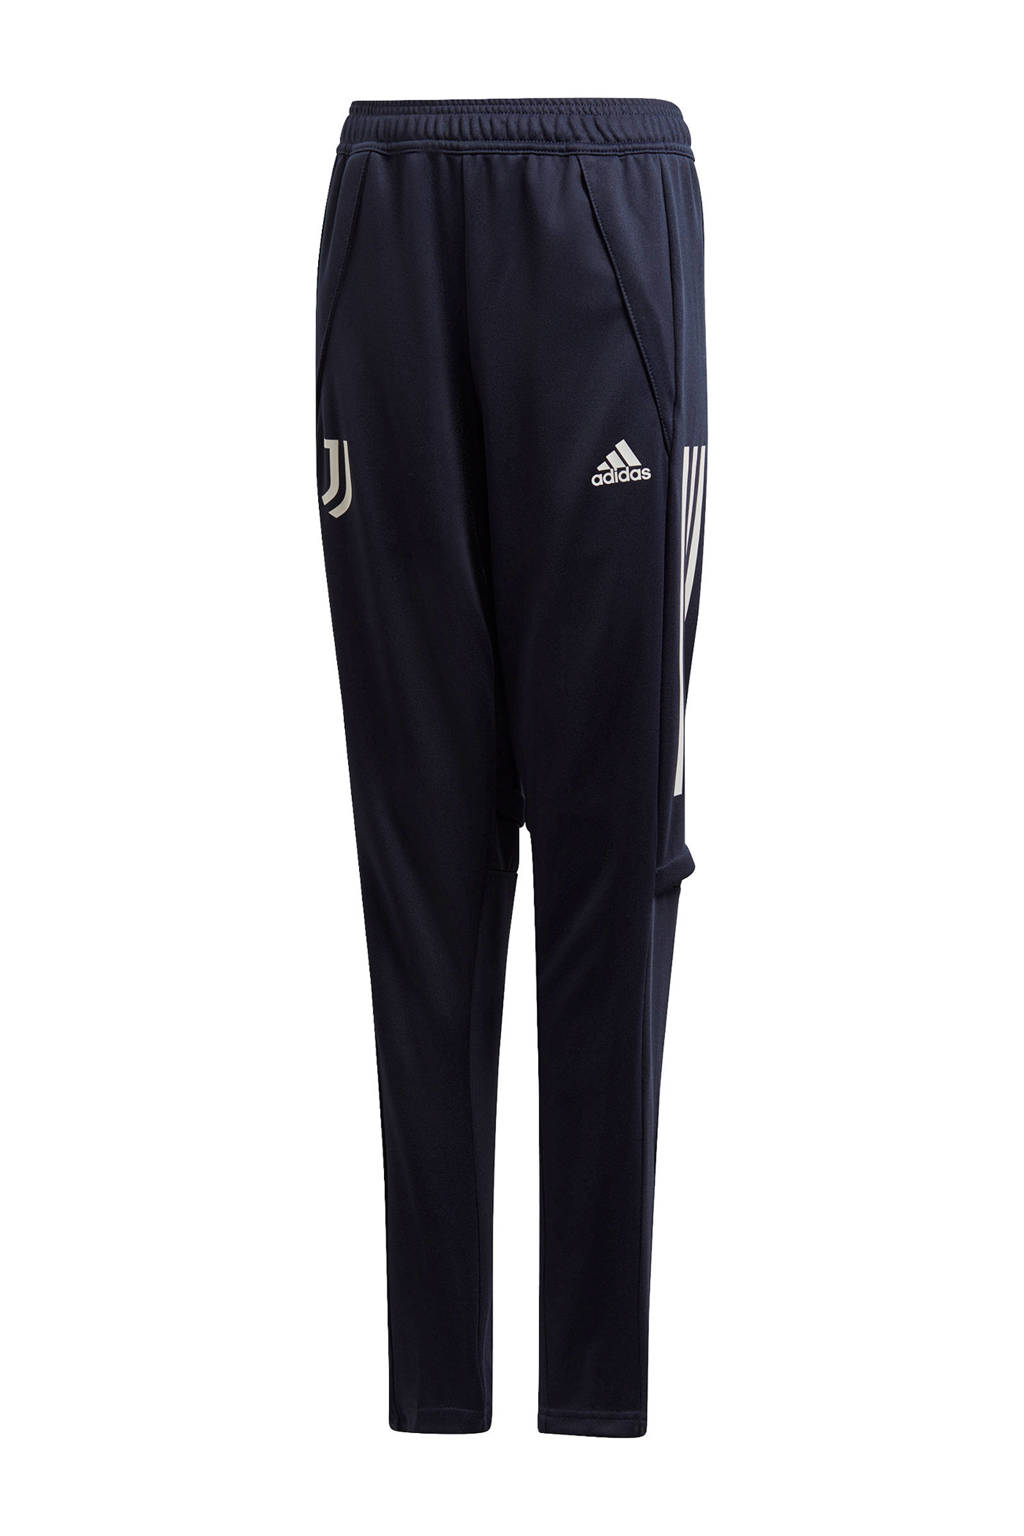 adidas Performance Junior Juventus voetbalbroek Training, Donkerblauw